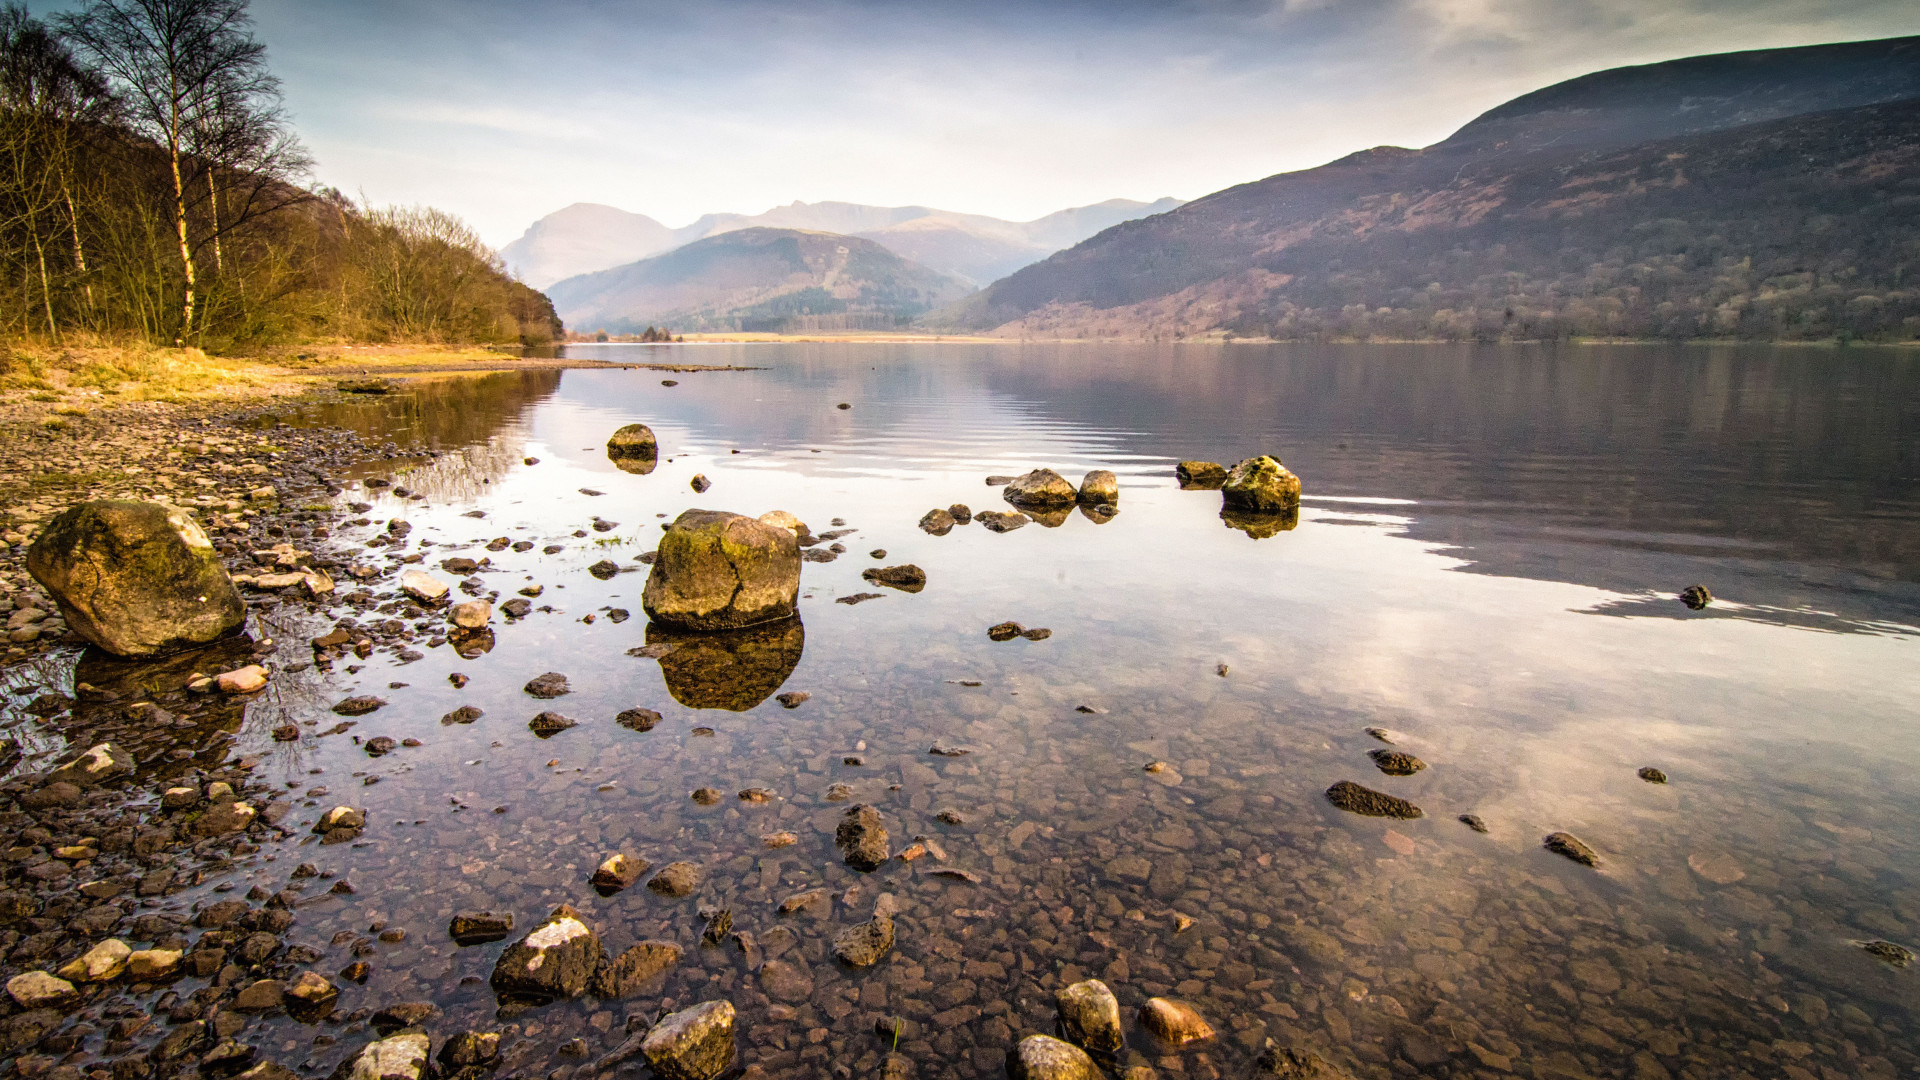 View to the hills over Ennerdale water